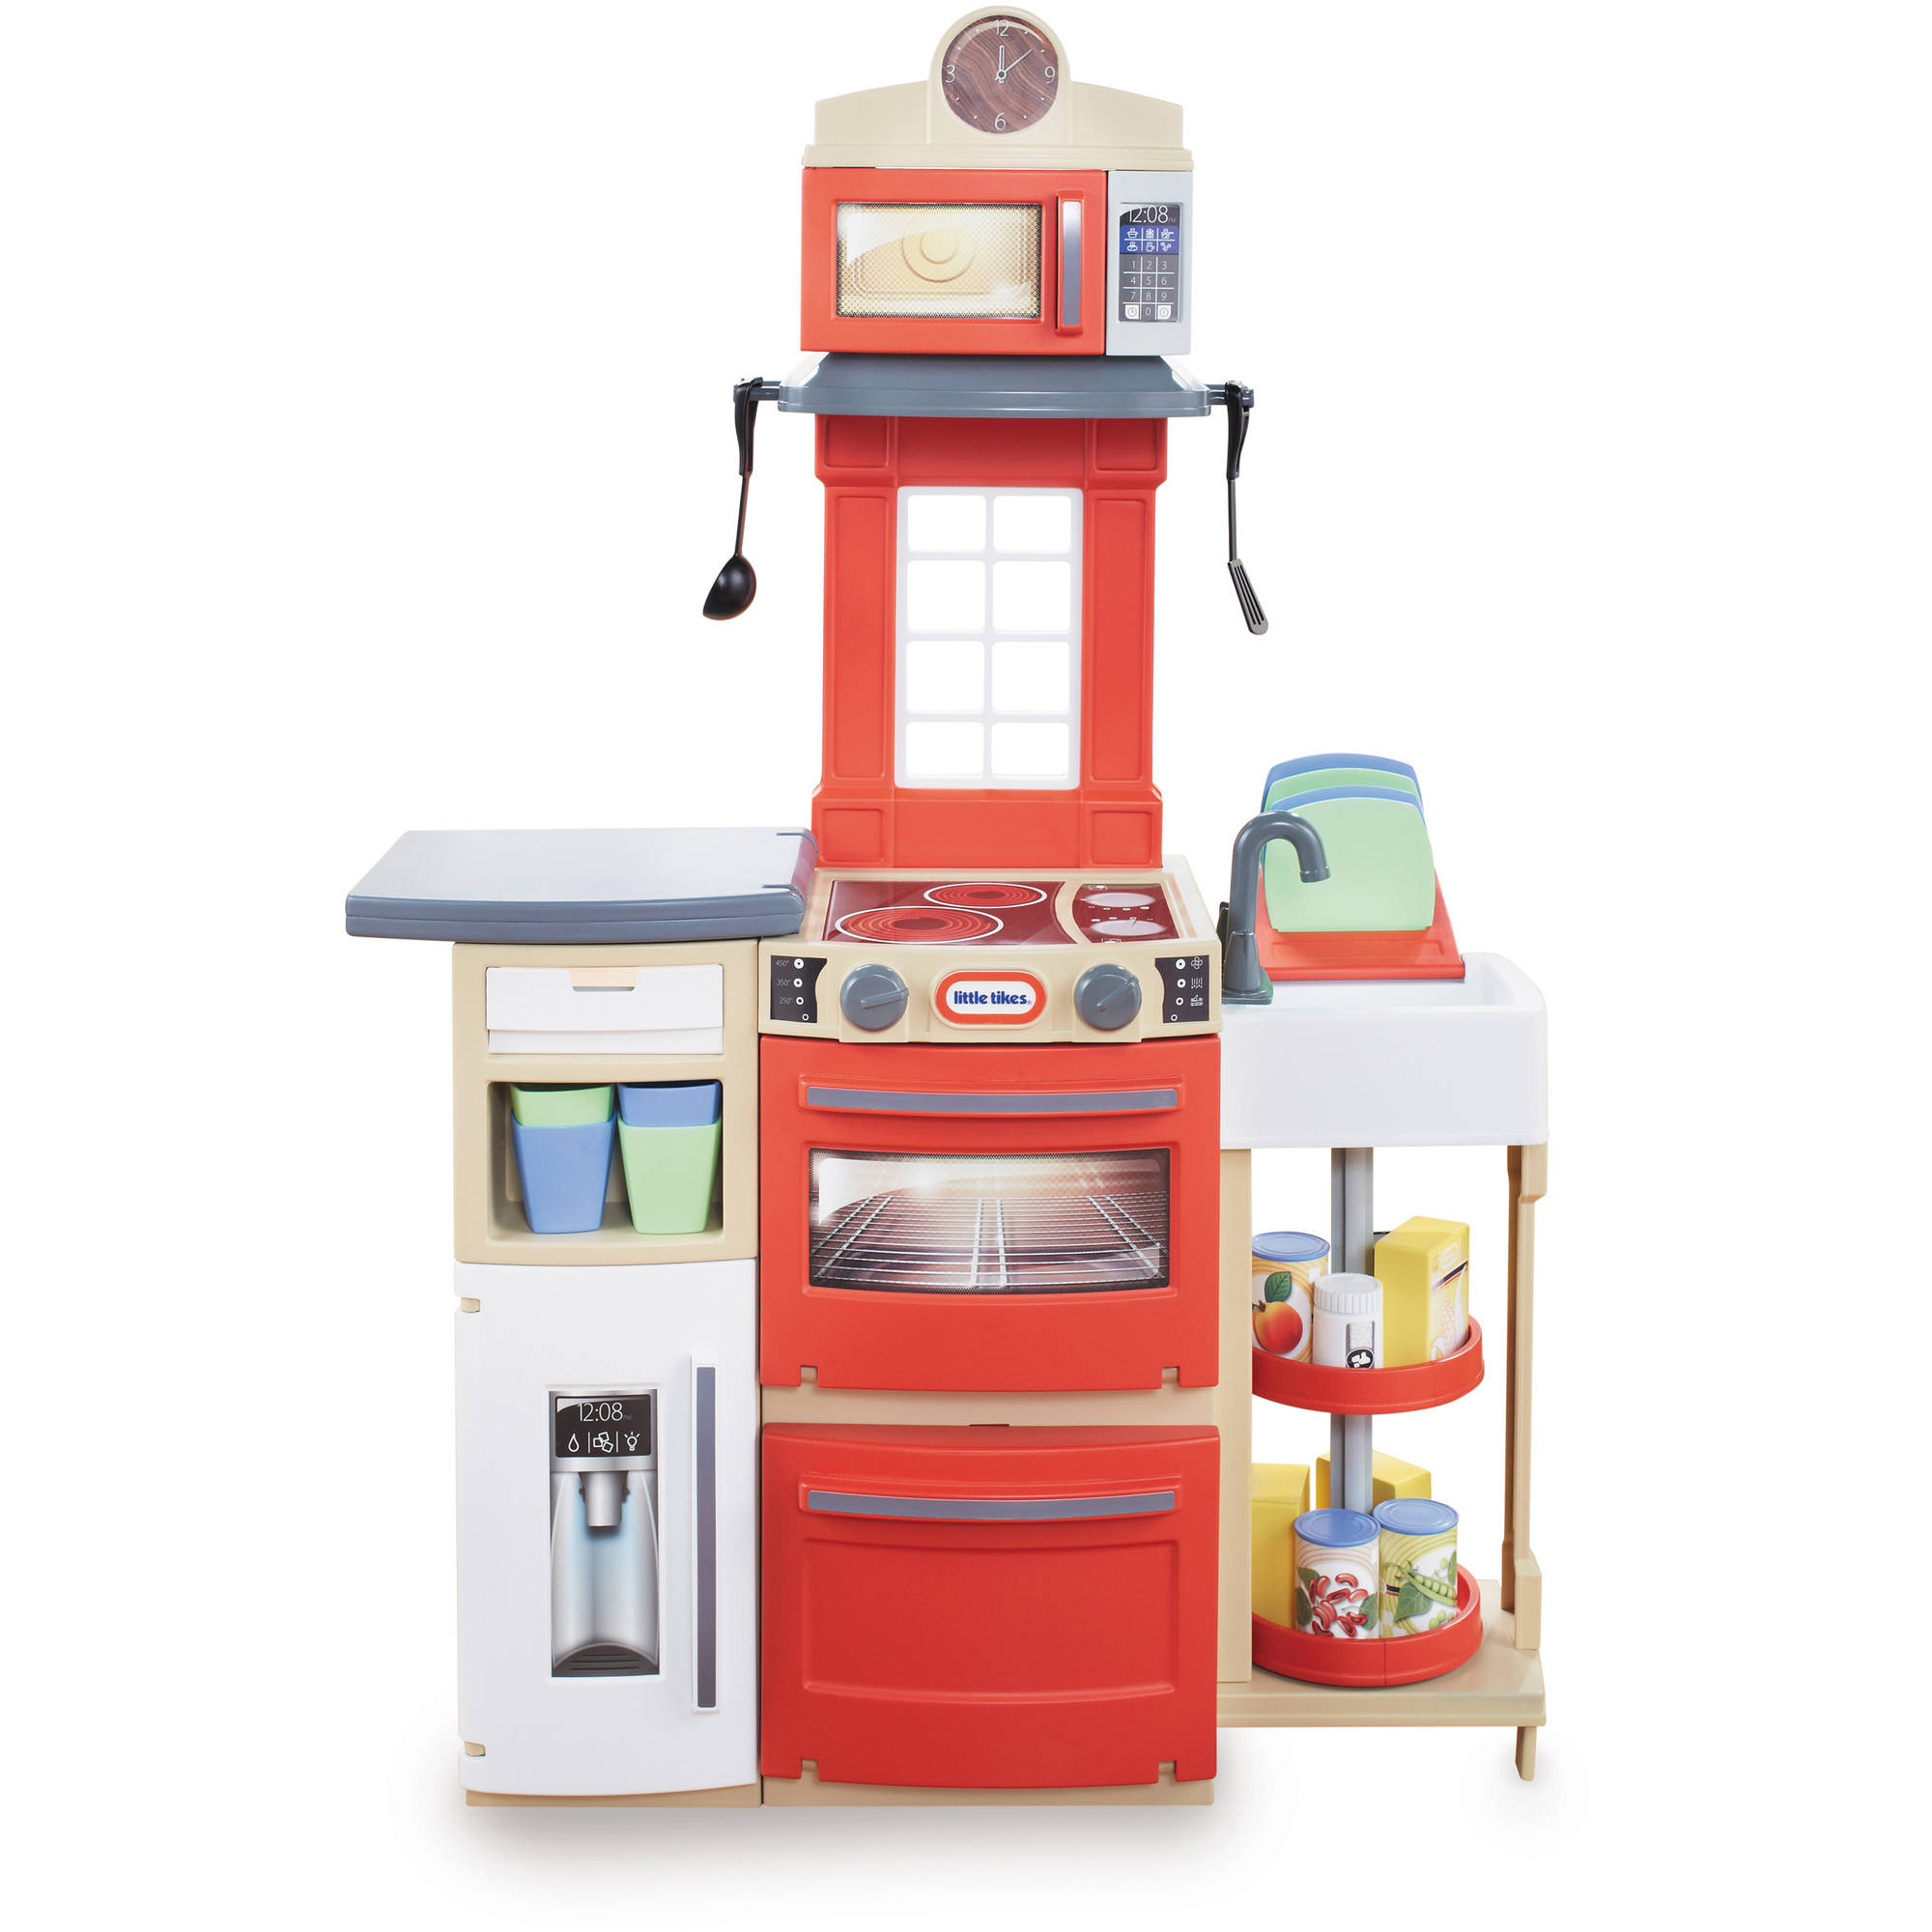 Little Tikes Cook \'n Store Play Kitchen with 32 Piece Accessory Set - Red -  Walmart.com